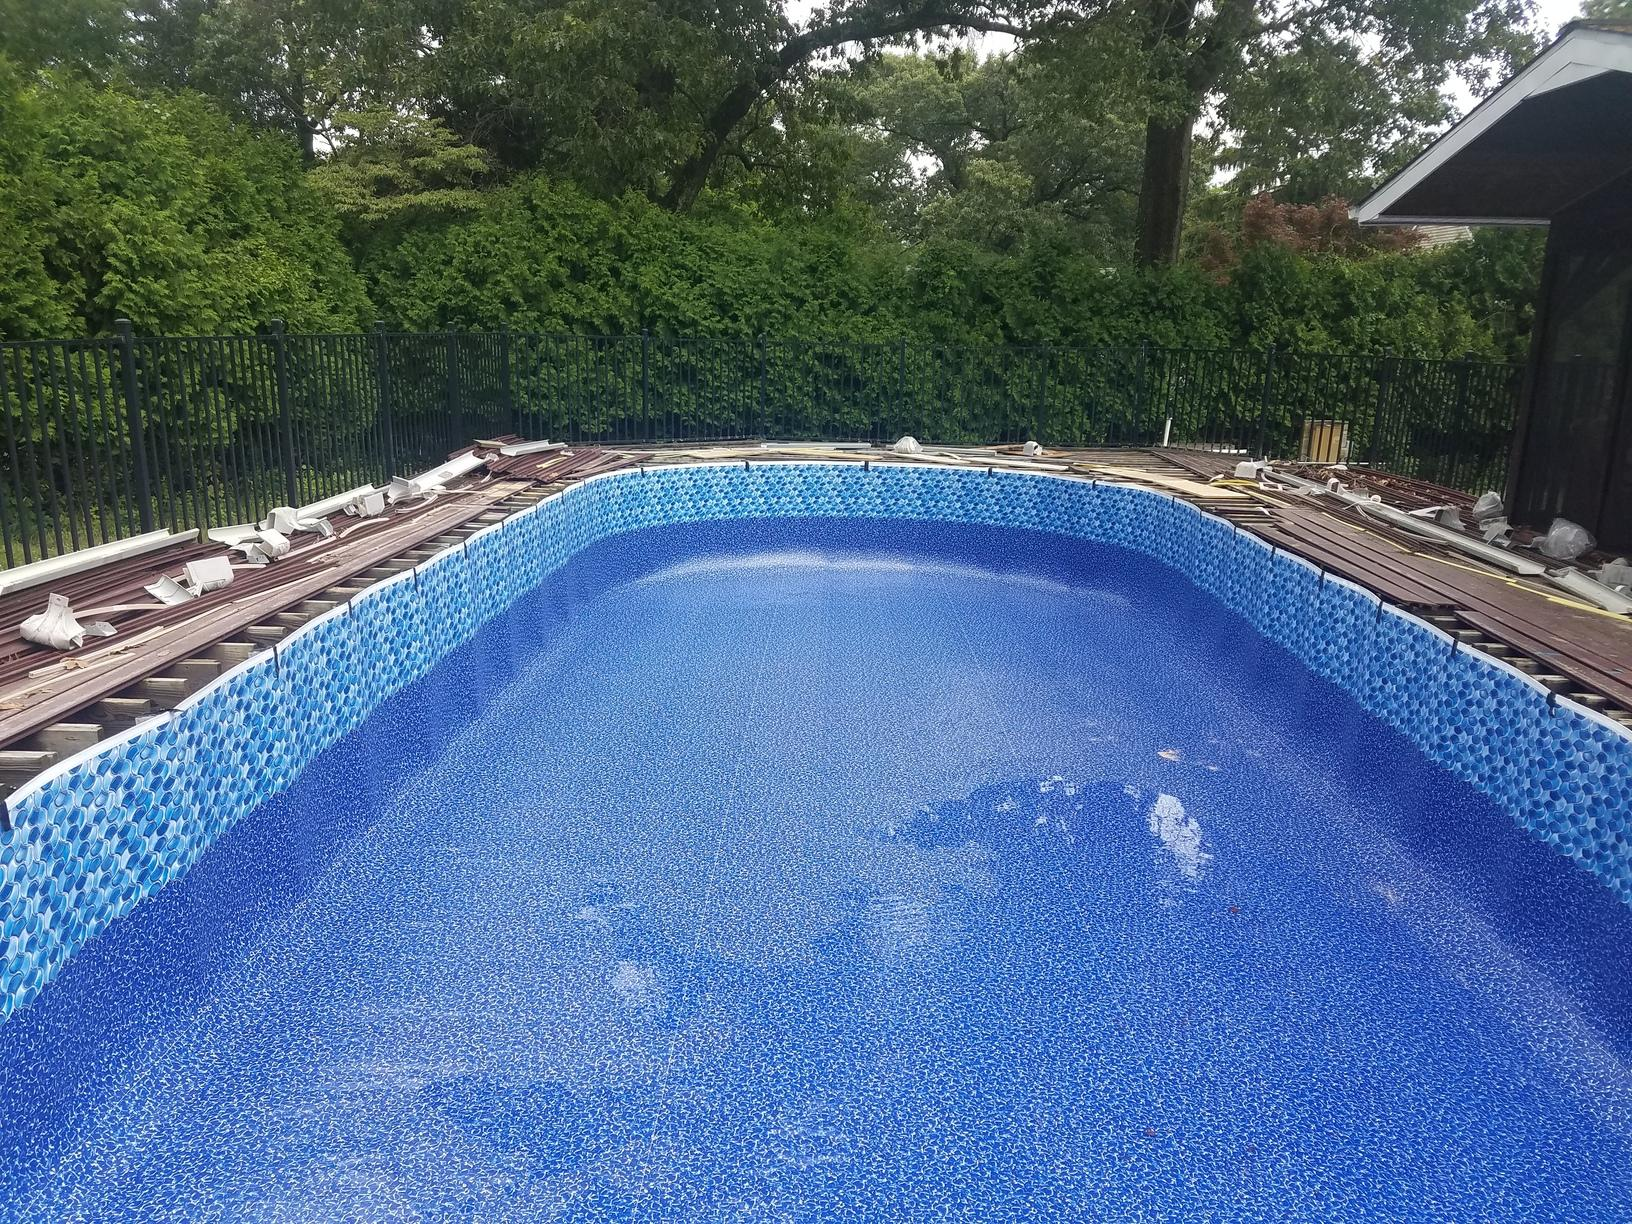 Liner Replacement in Colts Neck, NJ